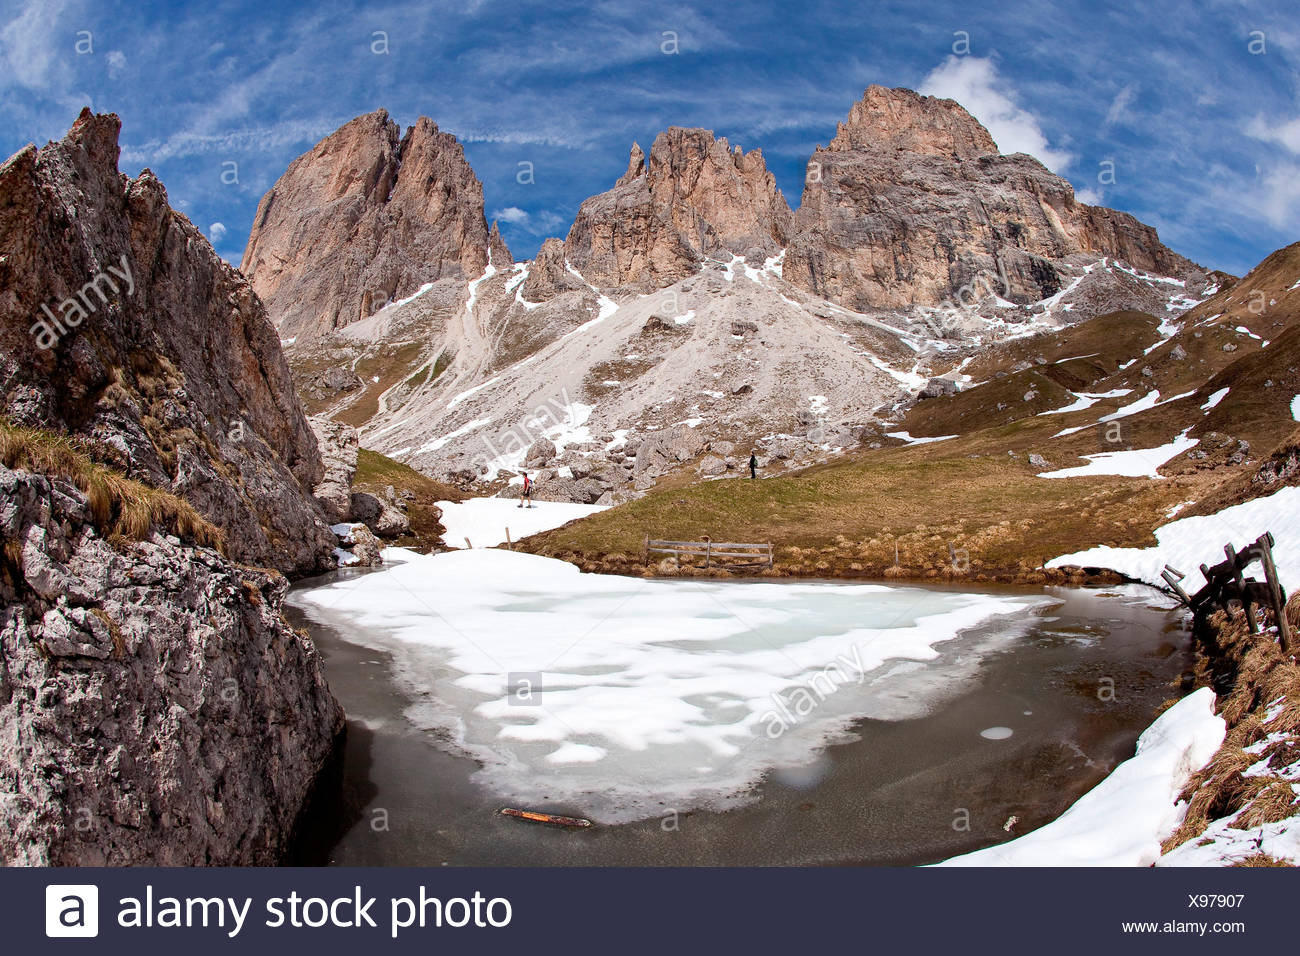 The Langkofel seen from the four-and-a-half-hour, moderately difficult hike around its main summit in the Gardena/Gröden Dolomites, South Tyrol, Trentino Alto Adige Italy Europe Stock Photo